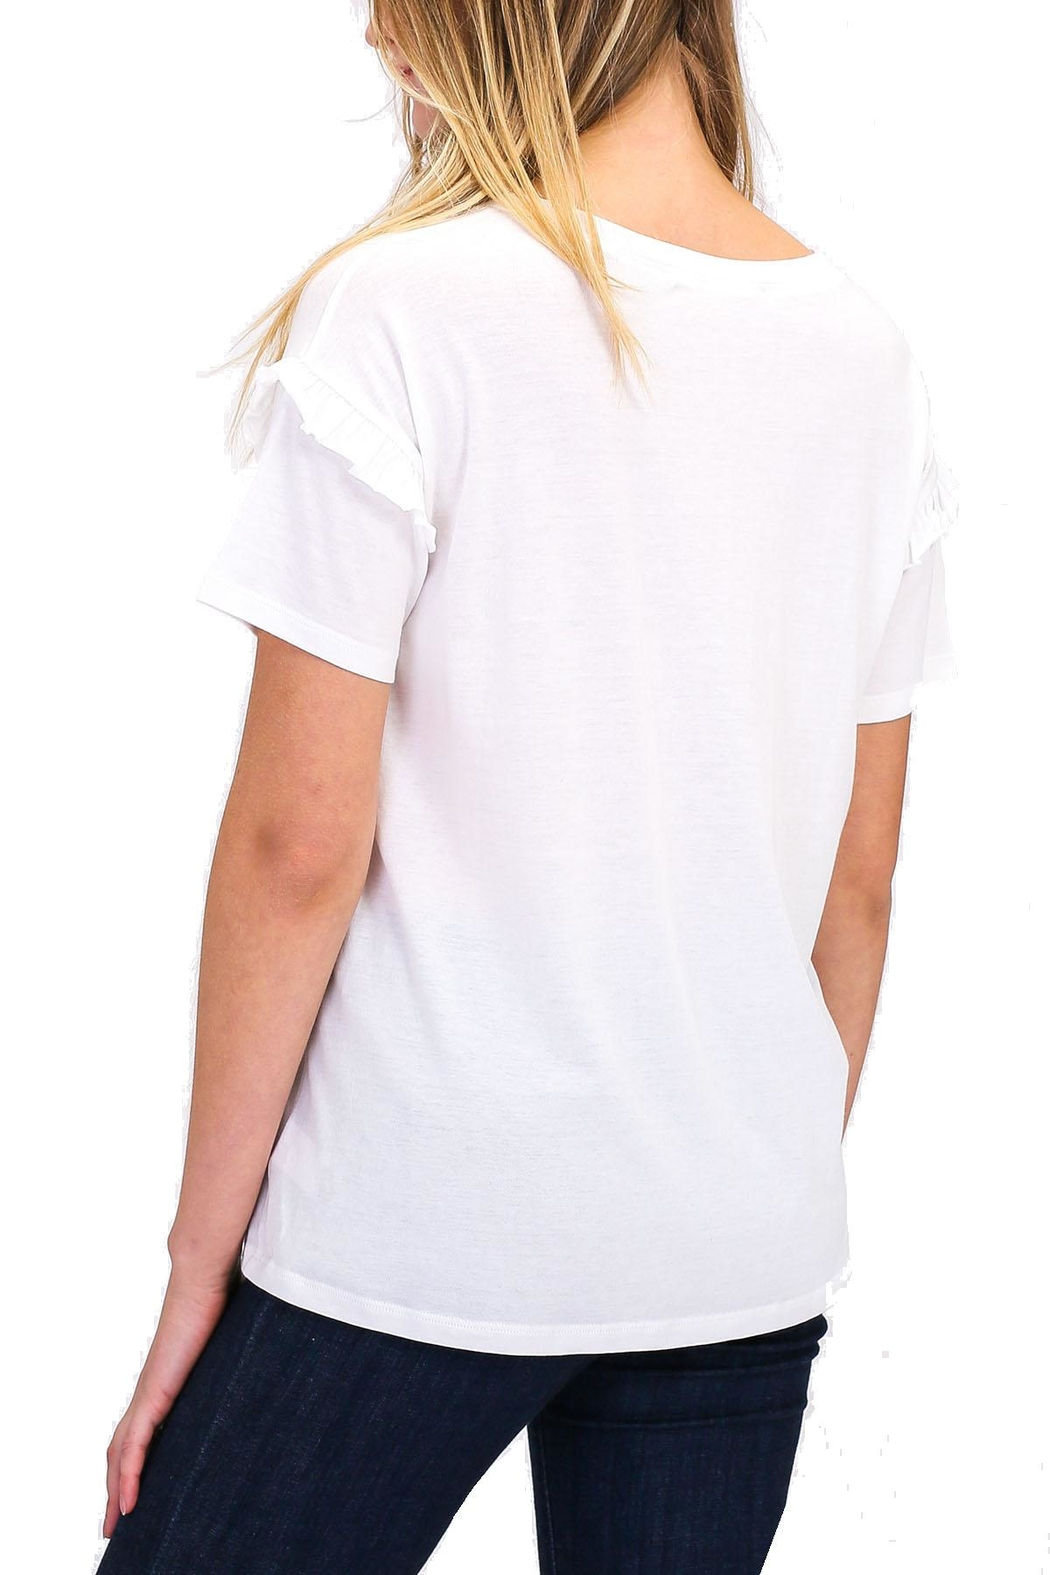 Double Zero Ruffle Detail Tee - Front Full Image